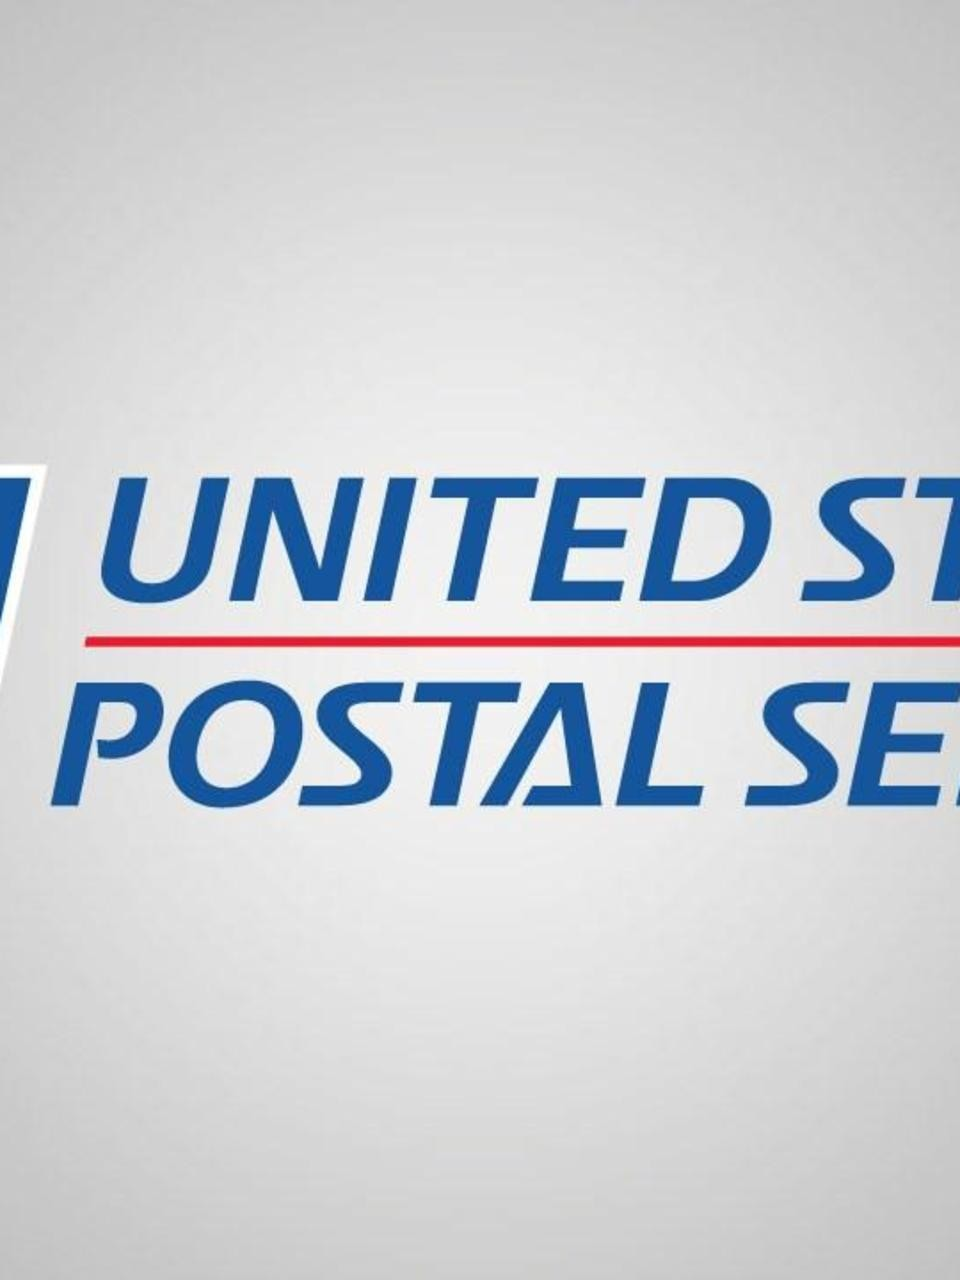 Where To Buy Single Postage Stamps Near Me Usps Announce Ways To Mail And Ship Without Leaving Home Weyi